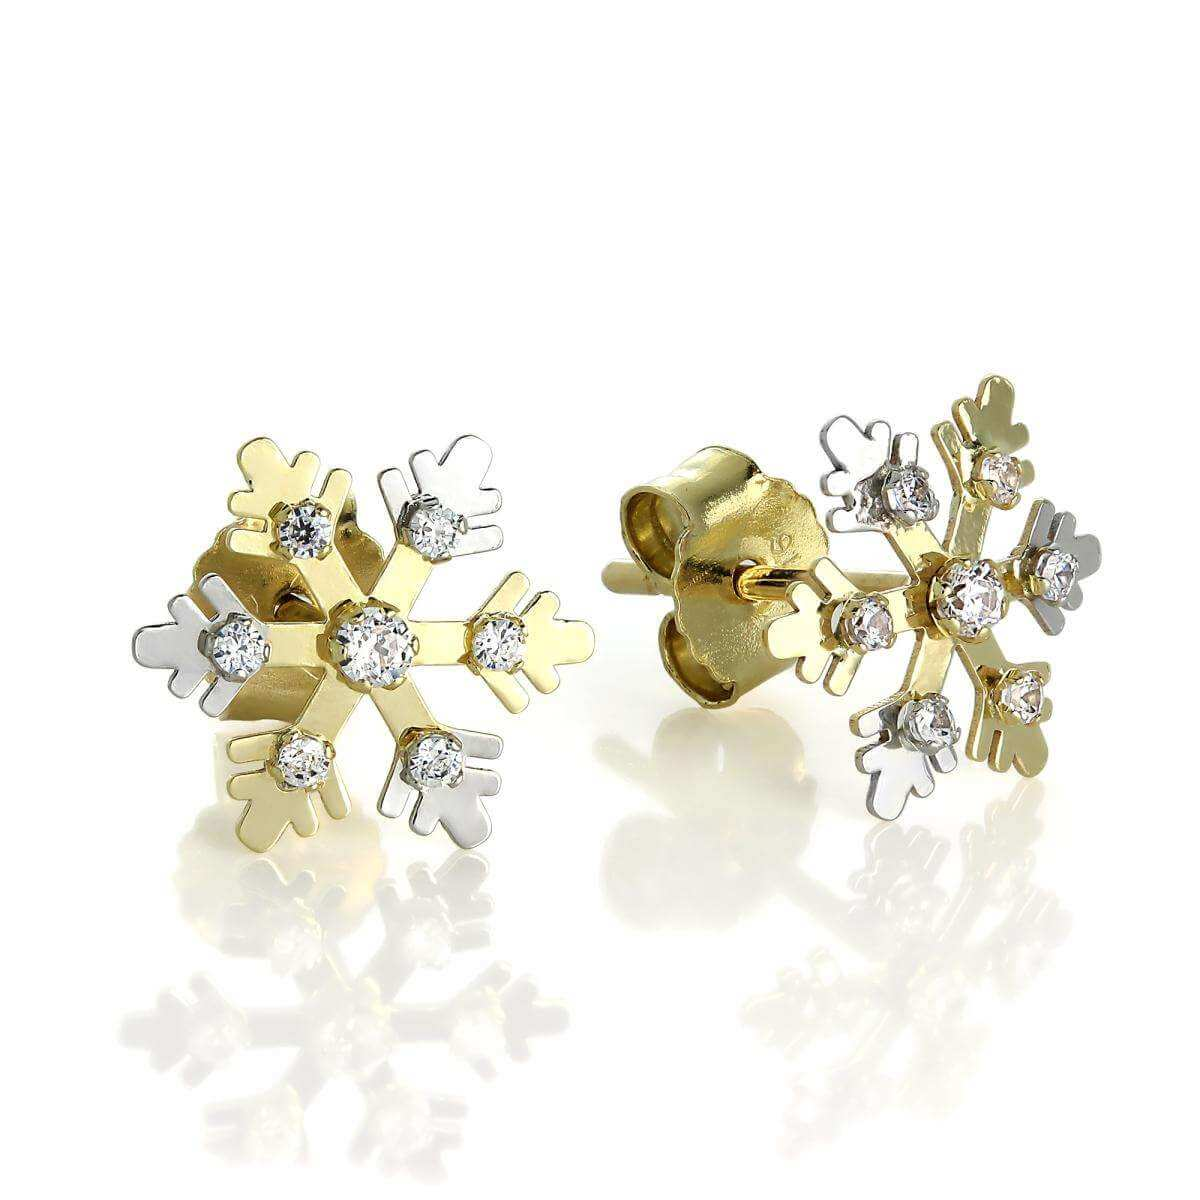 9ct White & Yellow Gold & CZ Crystal Snowflake Stud Earrings